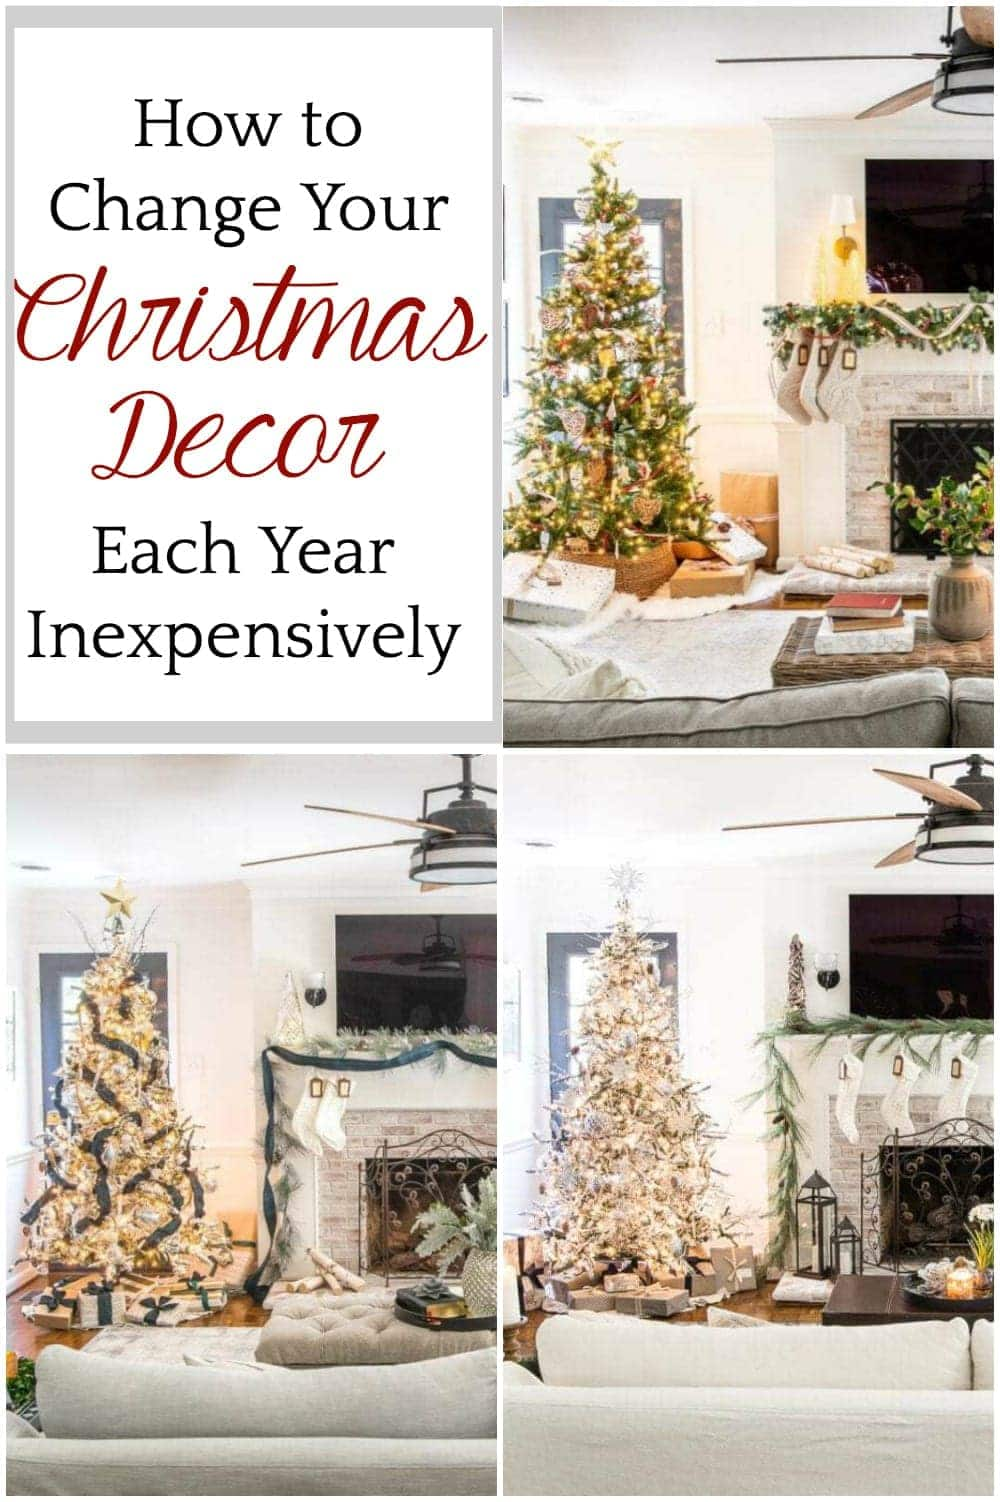 How to Change Your Christmas Decor Each Year Inexpensively | 8 tips and tricks to change your Christmas decor theme and color scheme each year using mostly what you already have.